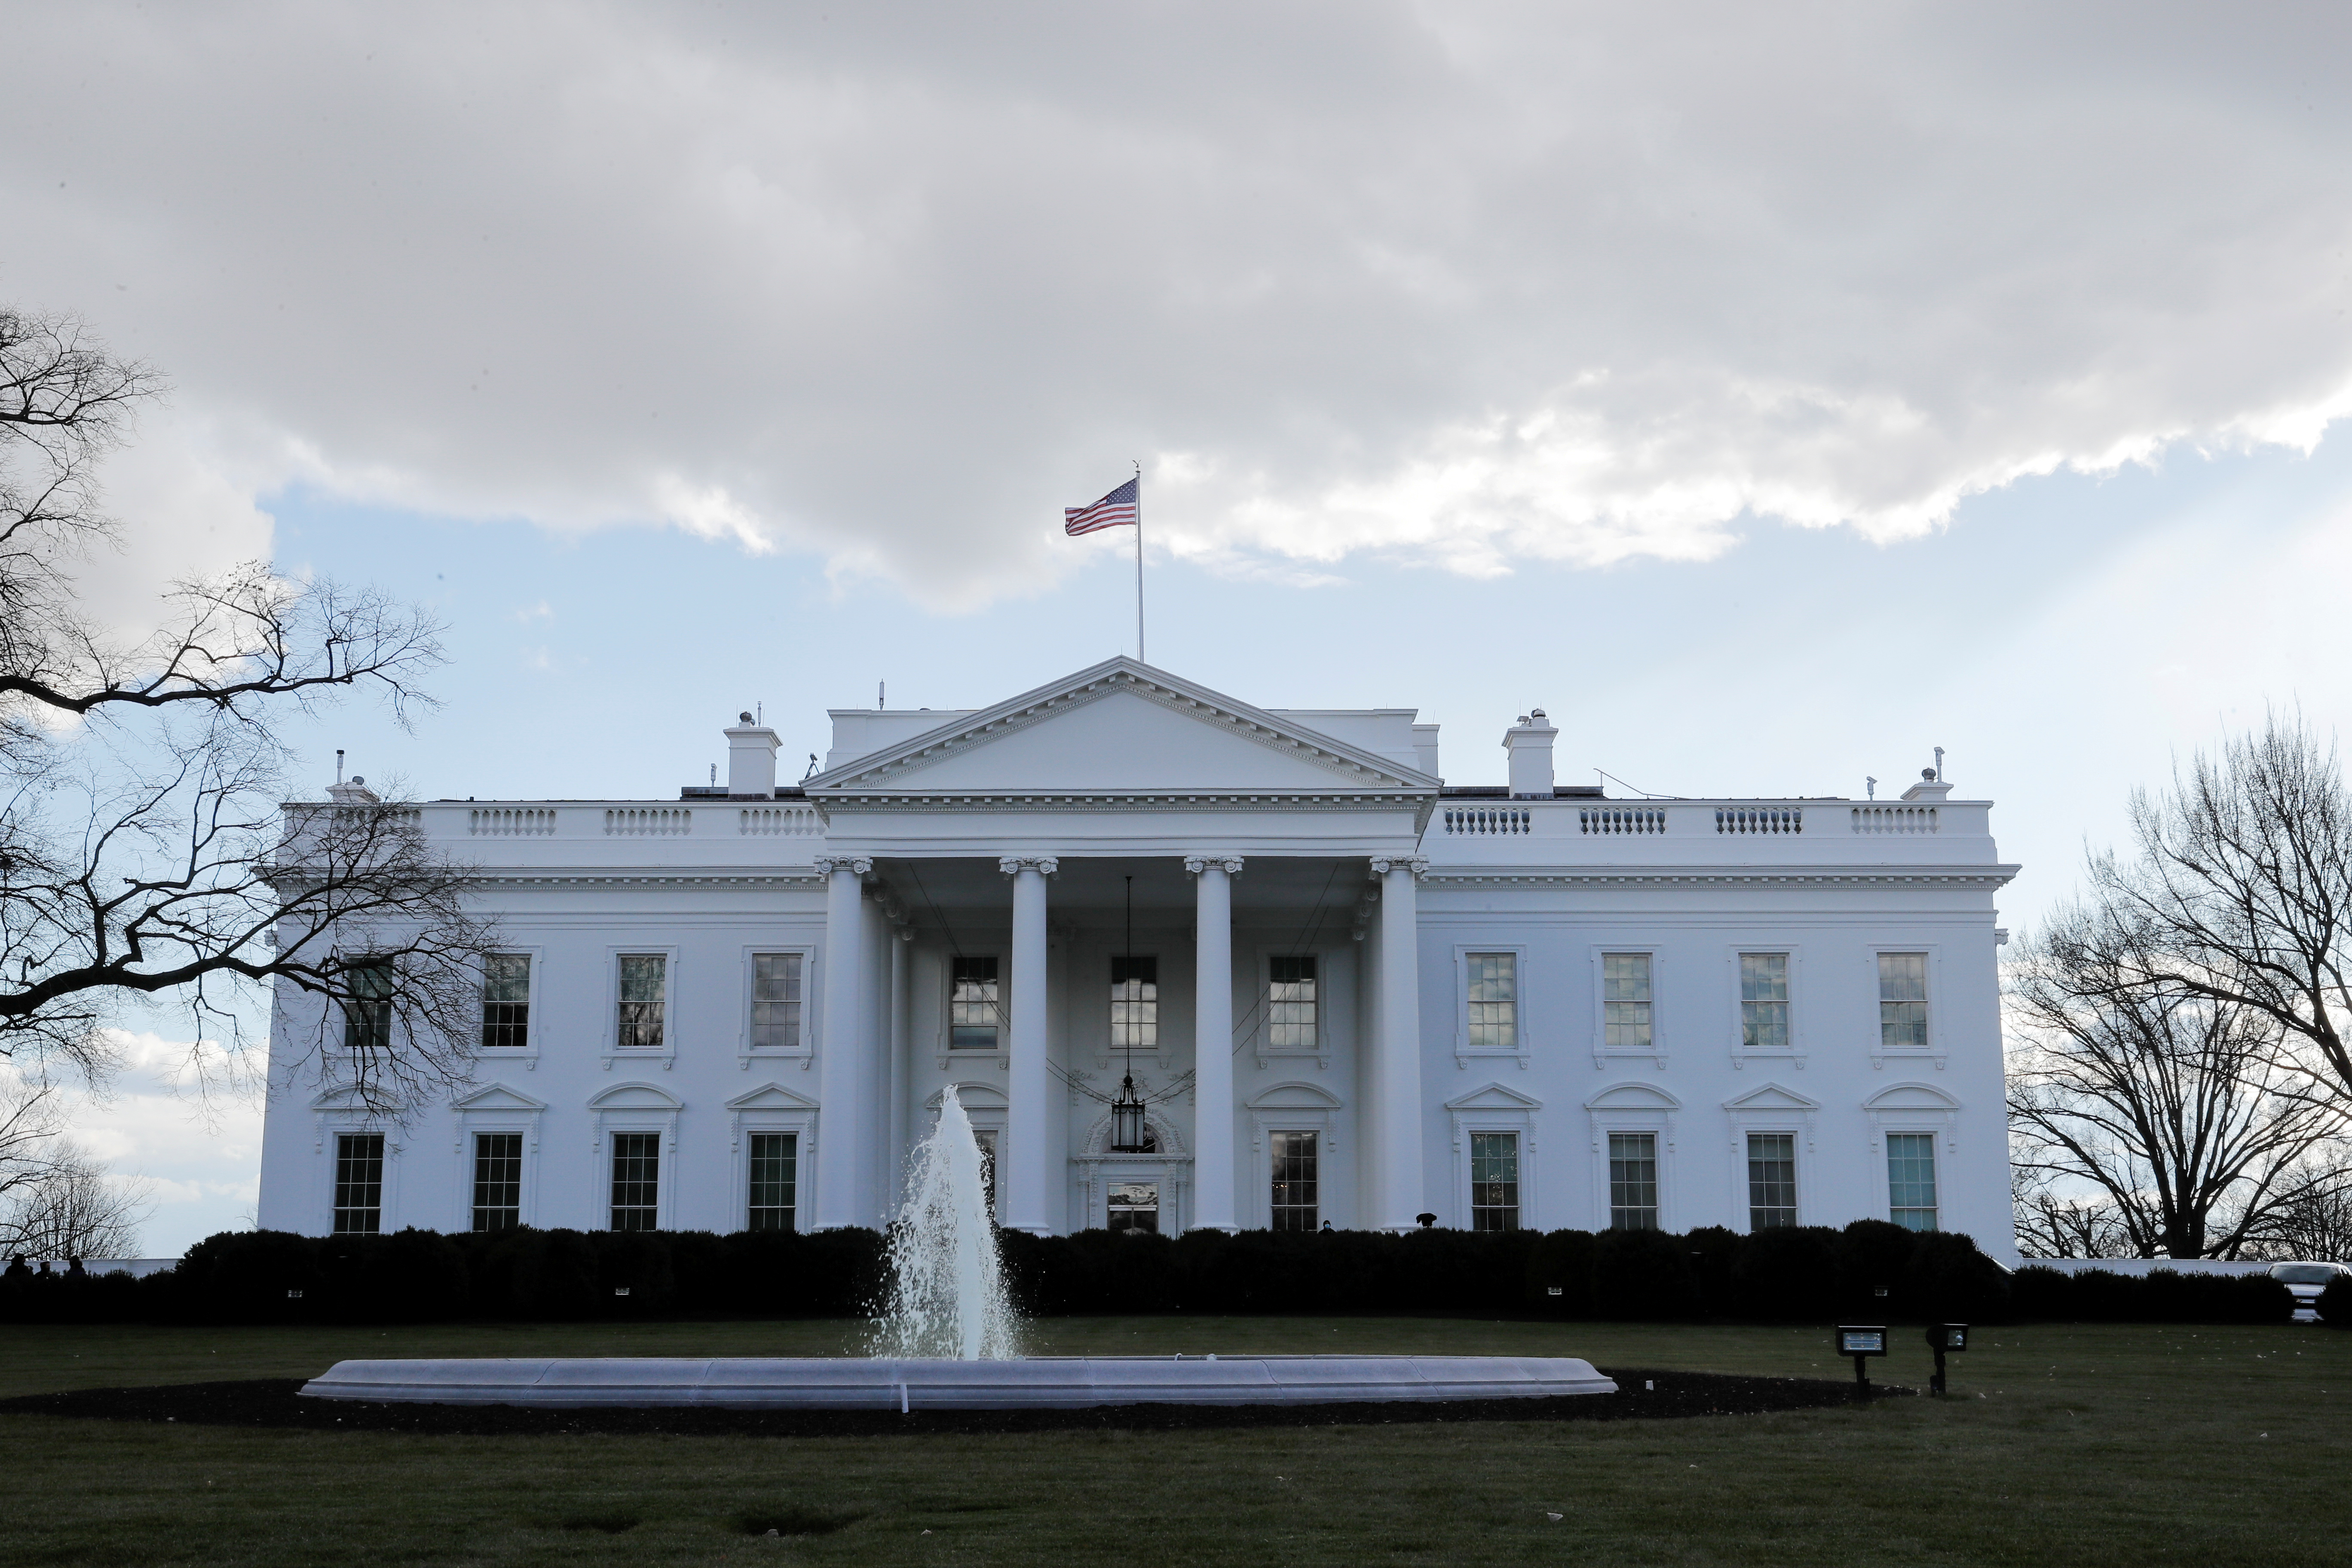 A view of the White House in Washington, U.S. January 18, 2021. REUTERS/Jim Bourg/File Photo